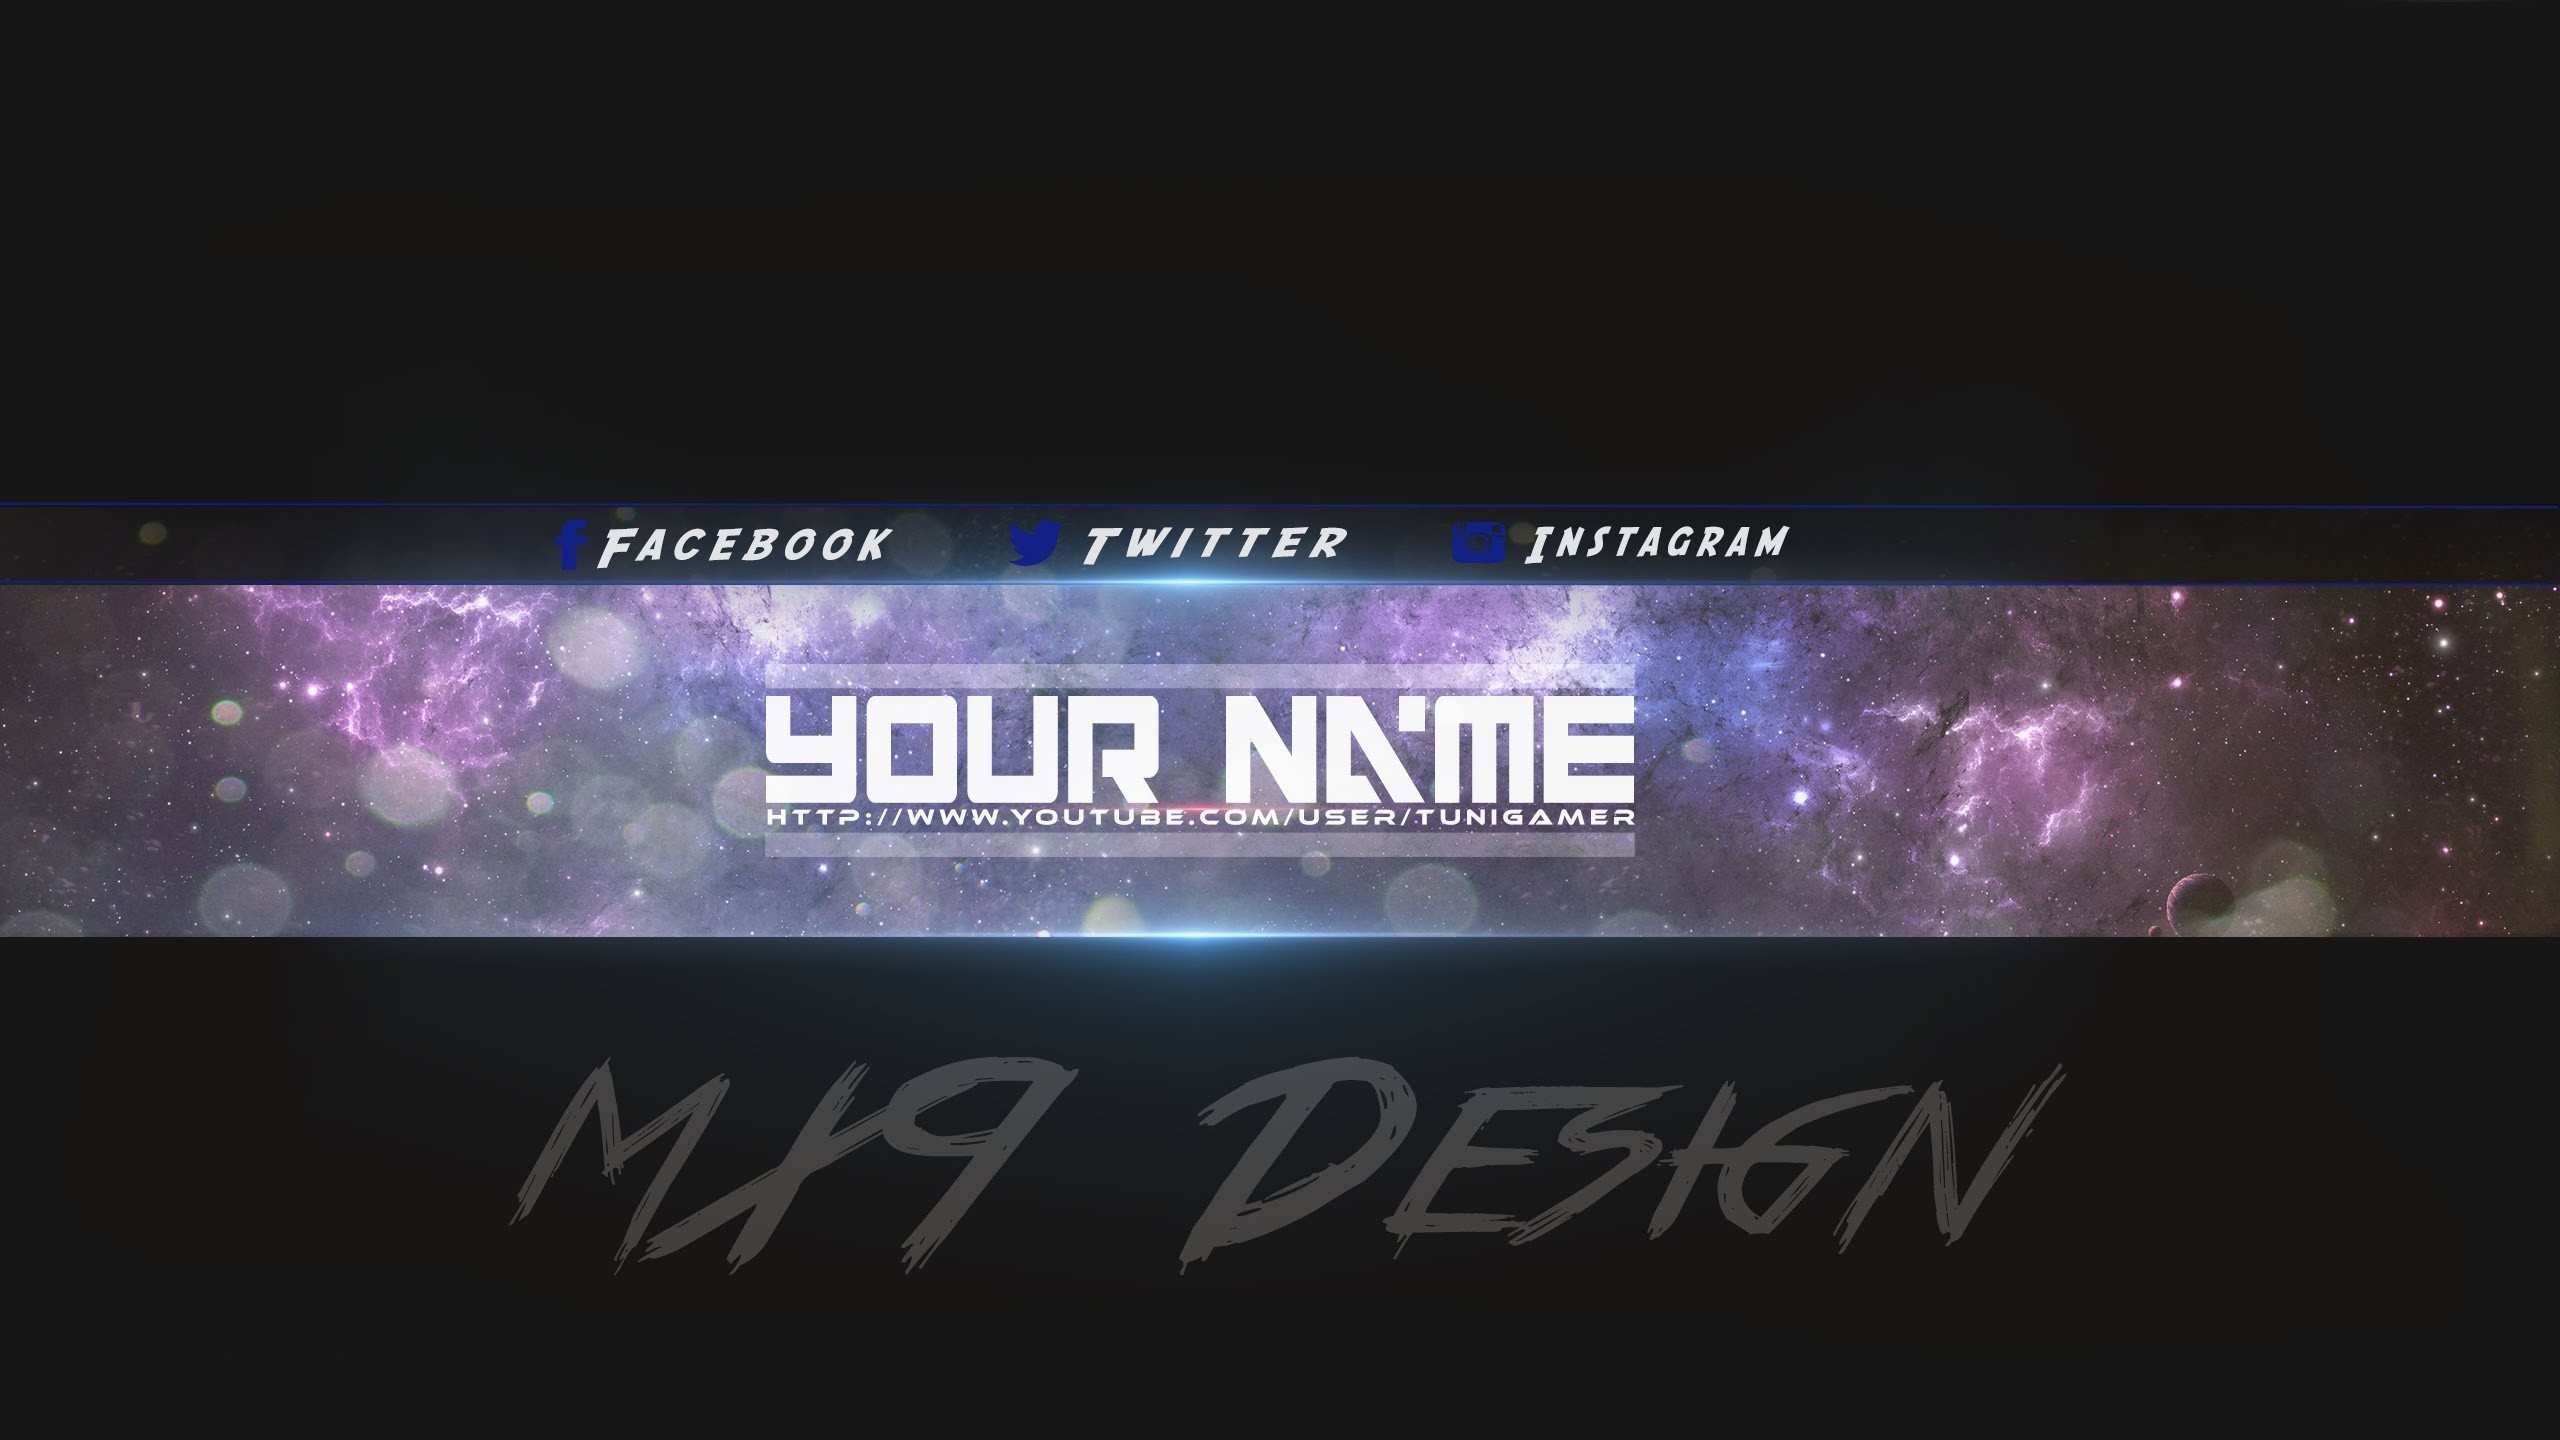 [SpeedArt] FREE Amazing Youtube Channel Banner Template #3 + Direct  Download Link – YouTube